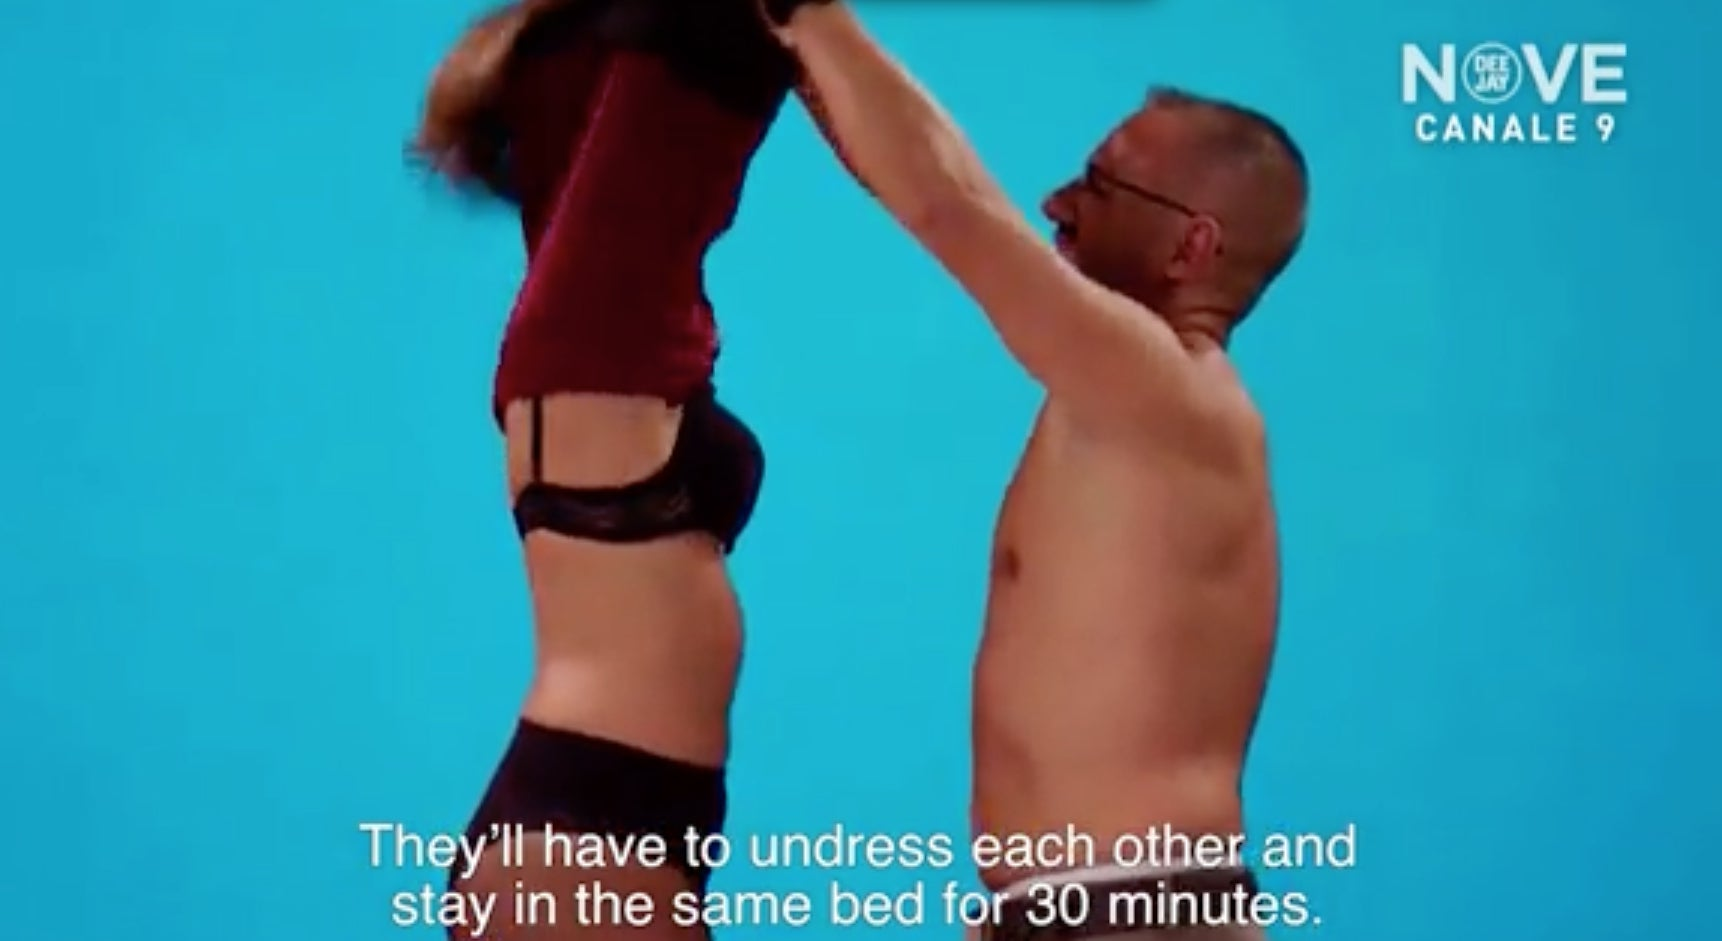 Undressed Reality TV Show Where Couples Strip Off And Share A Bed - Awkward video shows strangers undressing eachother